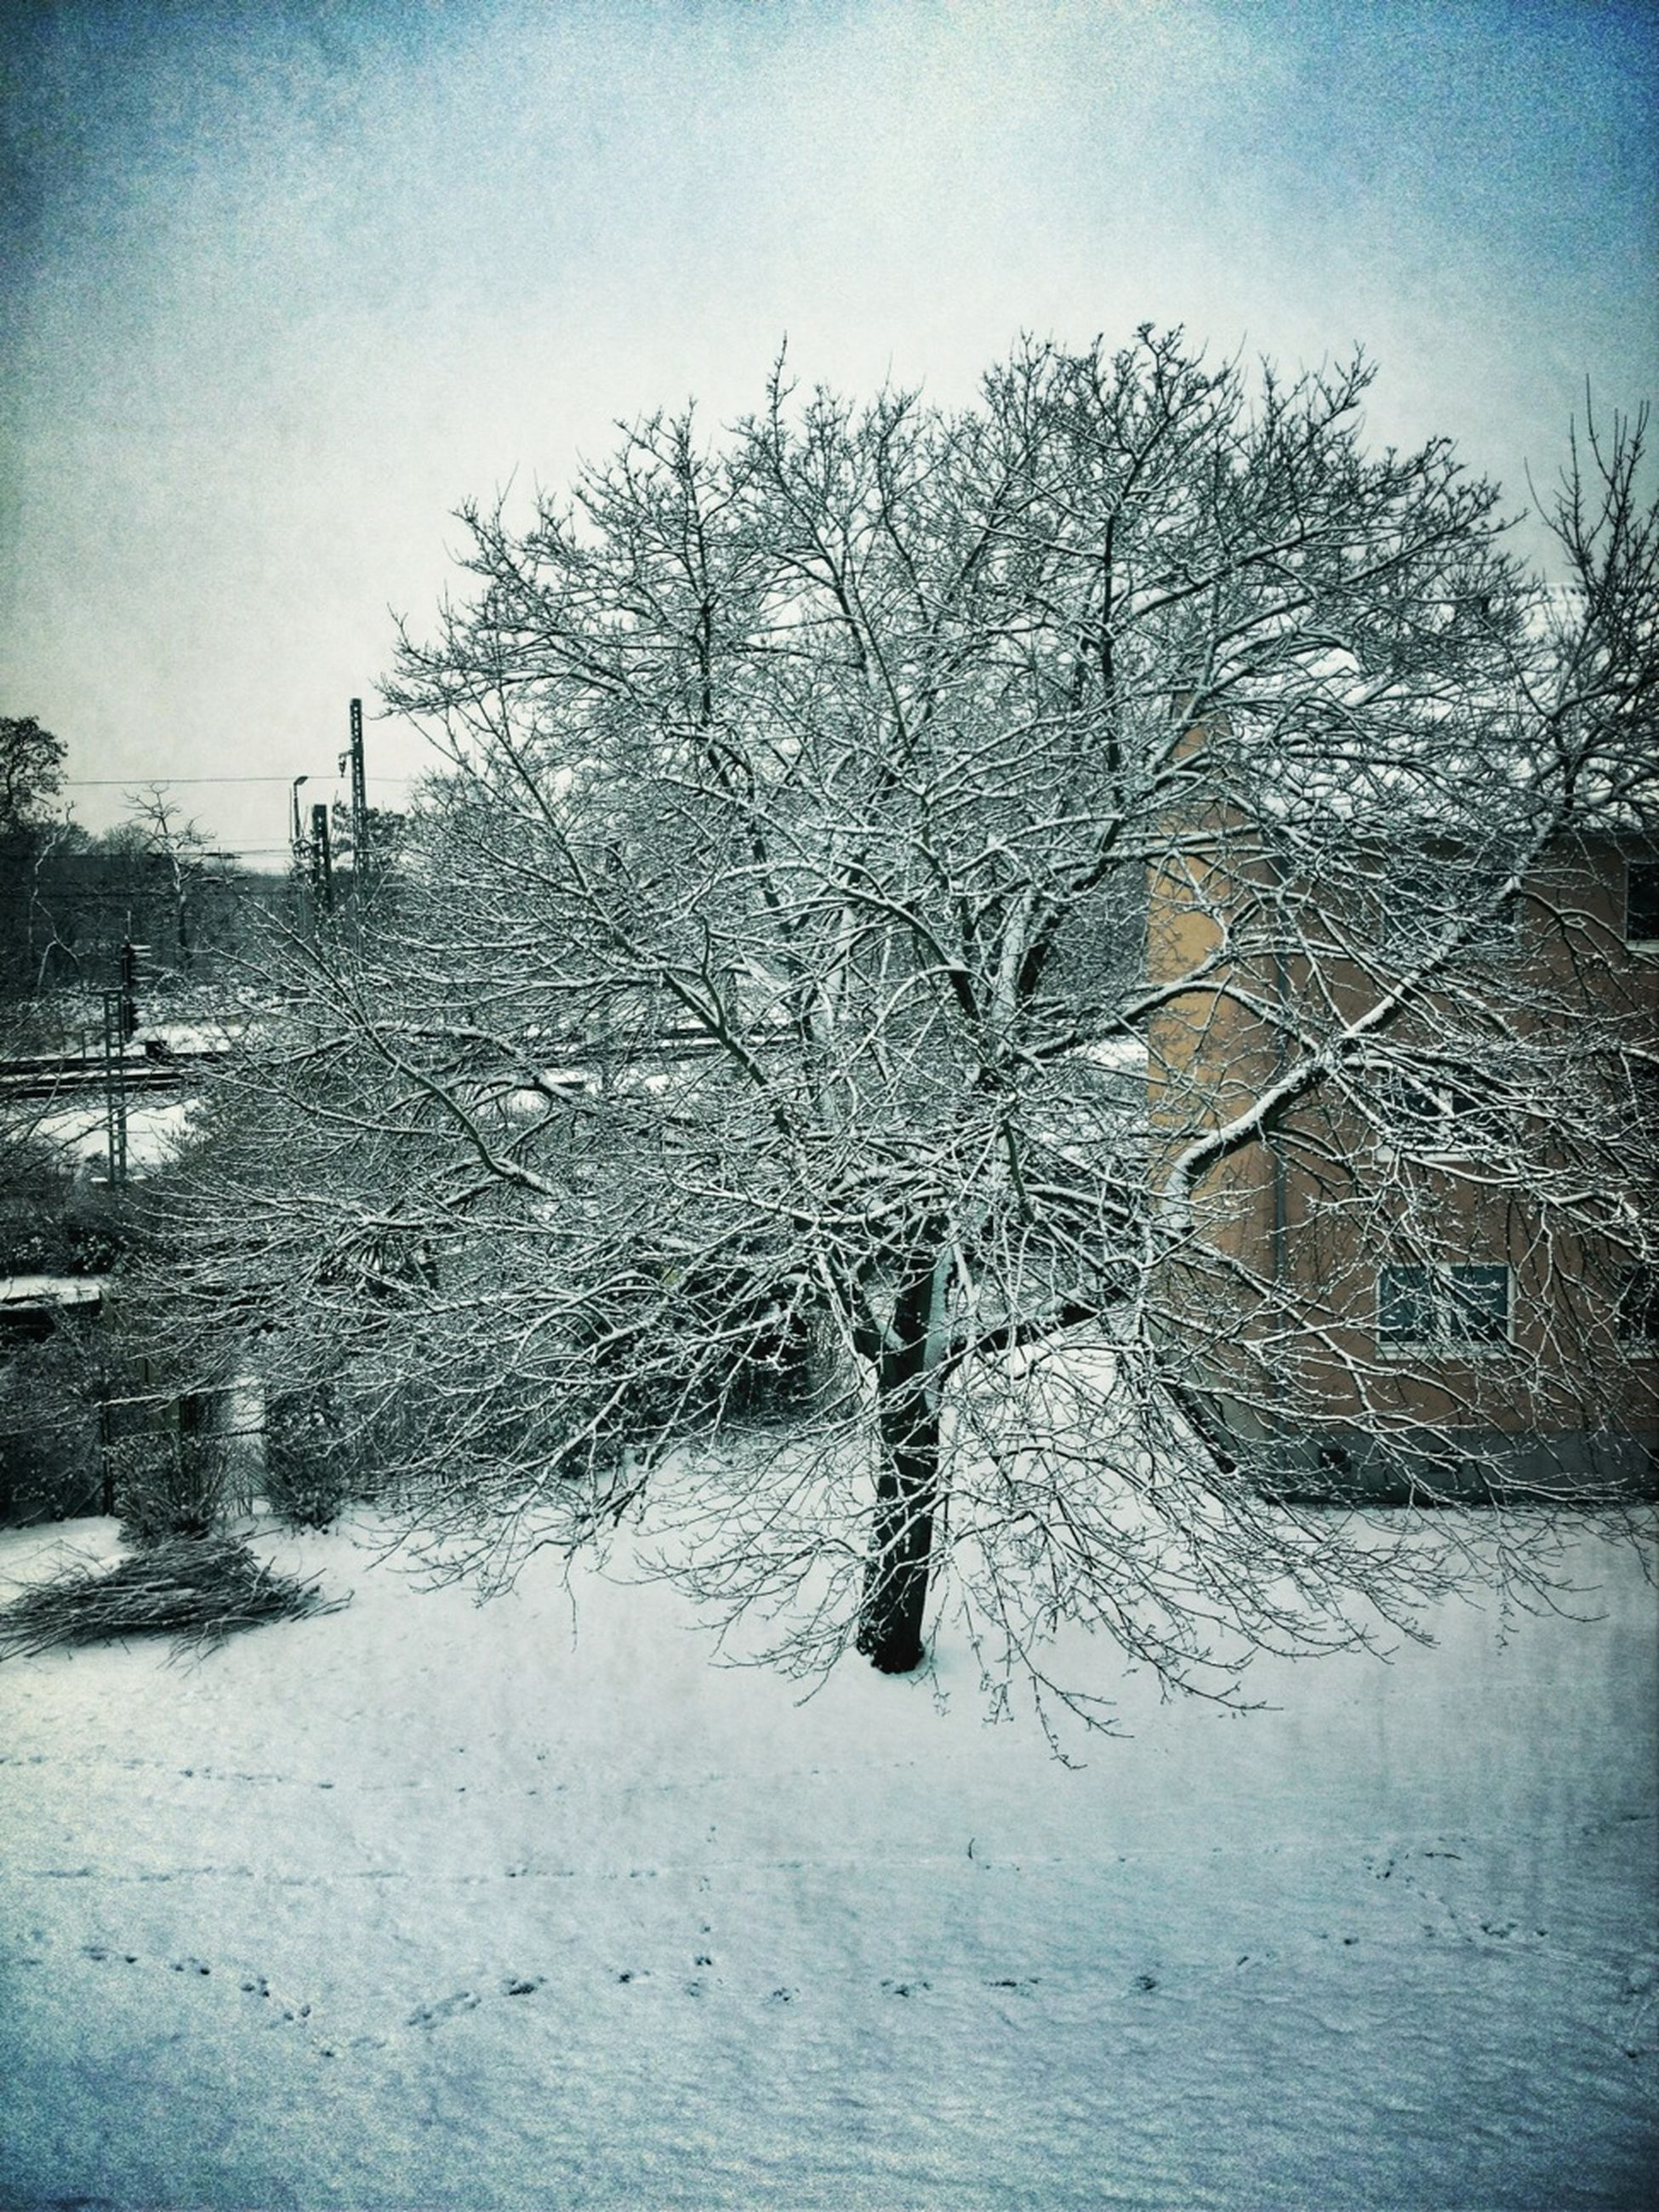 snow, winter, cold temperature, season, bare tree, weather, covering, field, frozen, tree, tranquility, nature, landscape, tranquil scene, sky, covered, white color, beauty in nature, scenics, branch